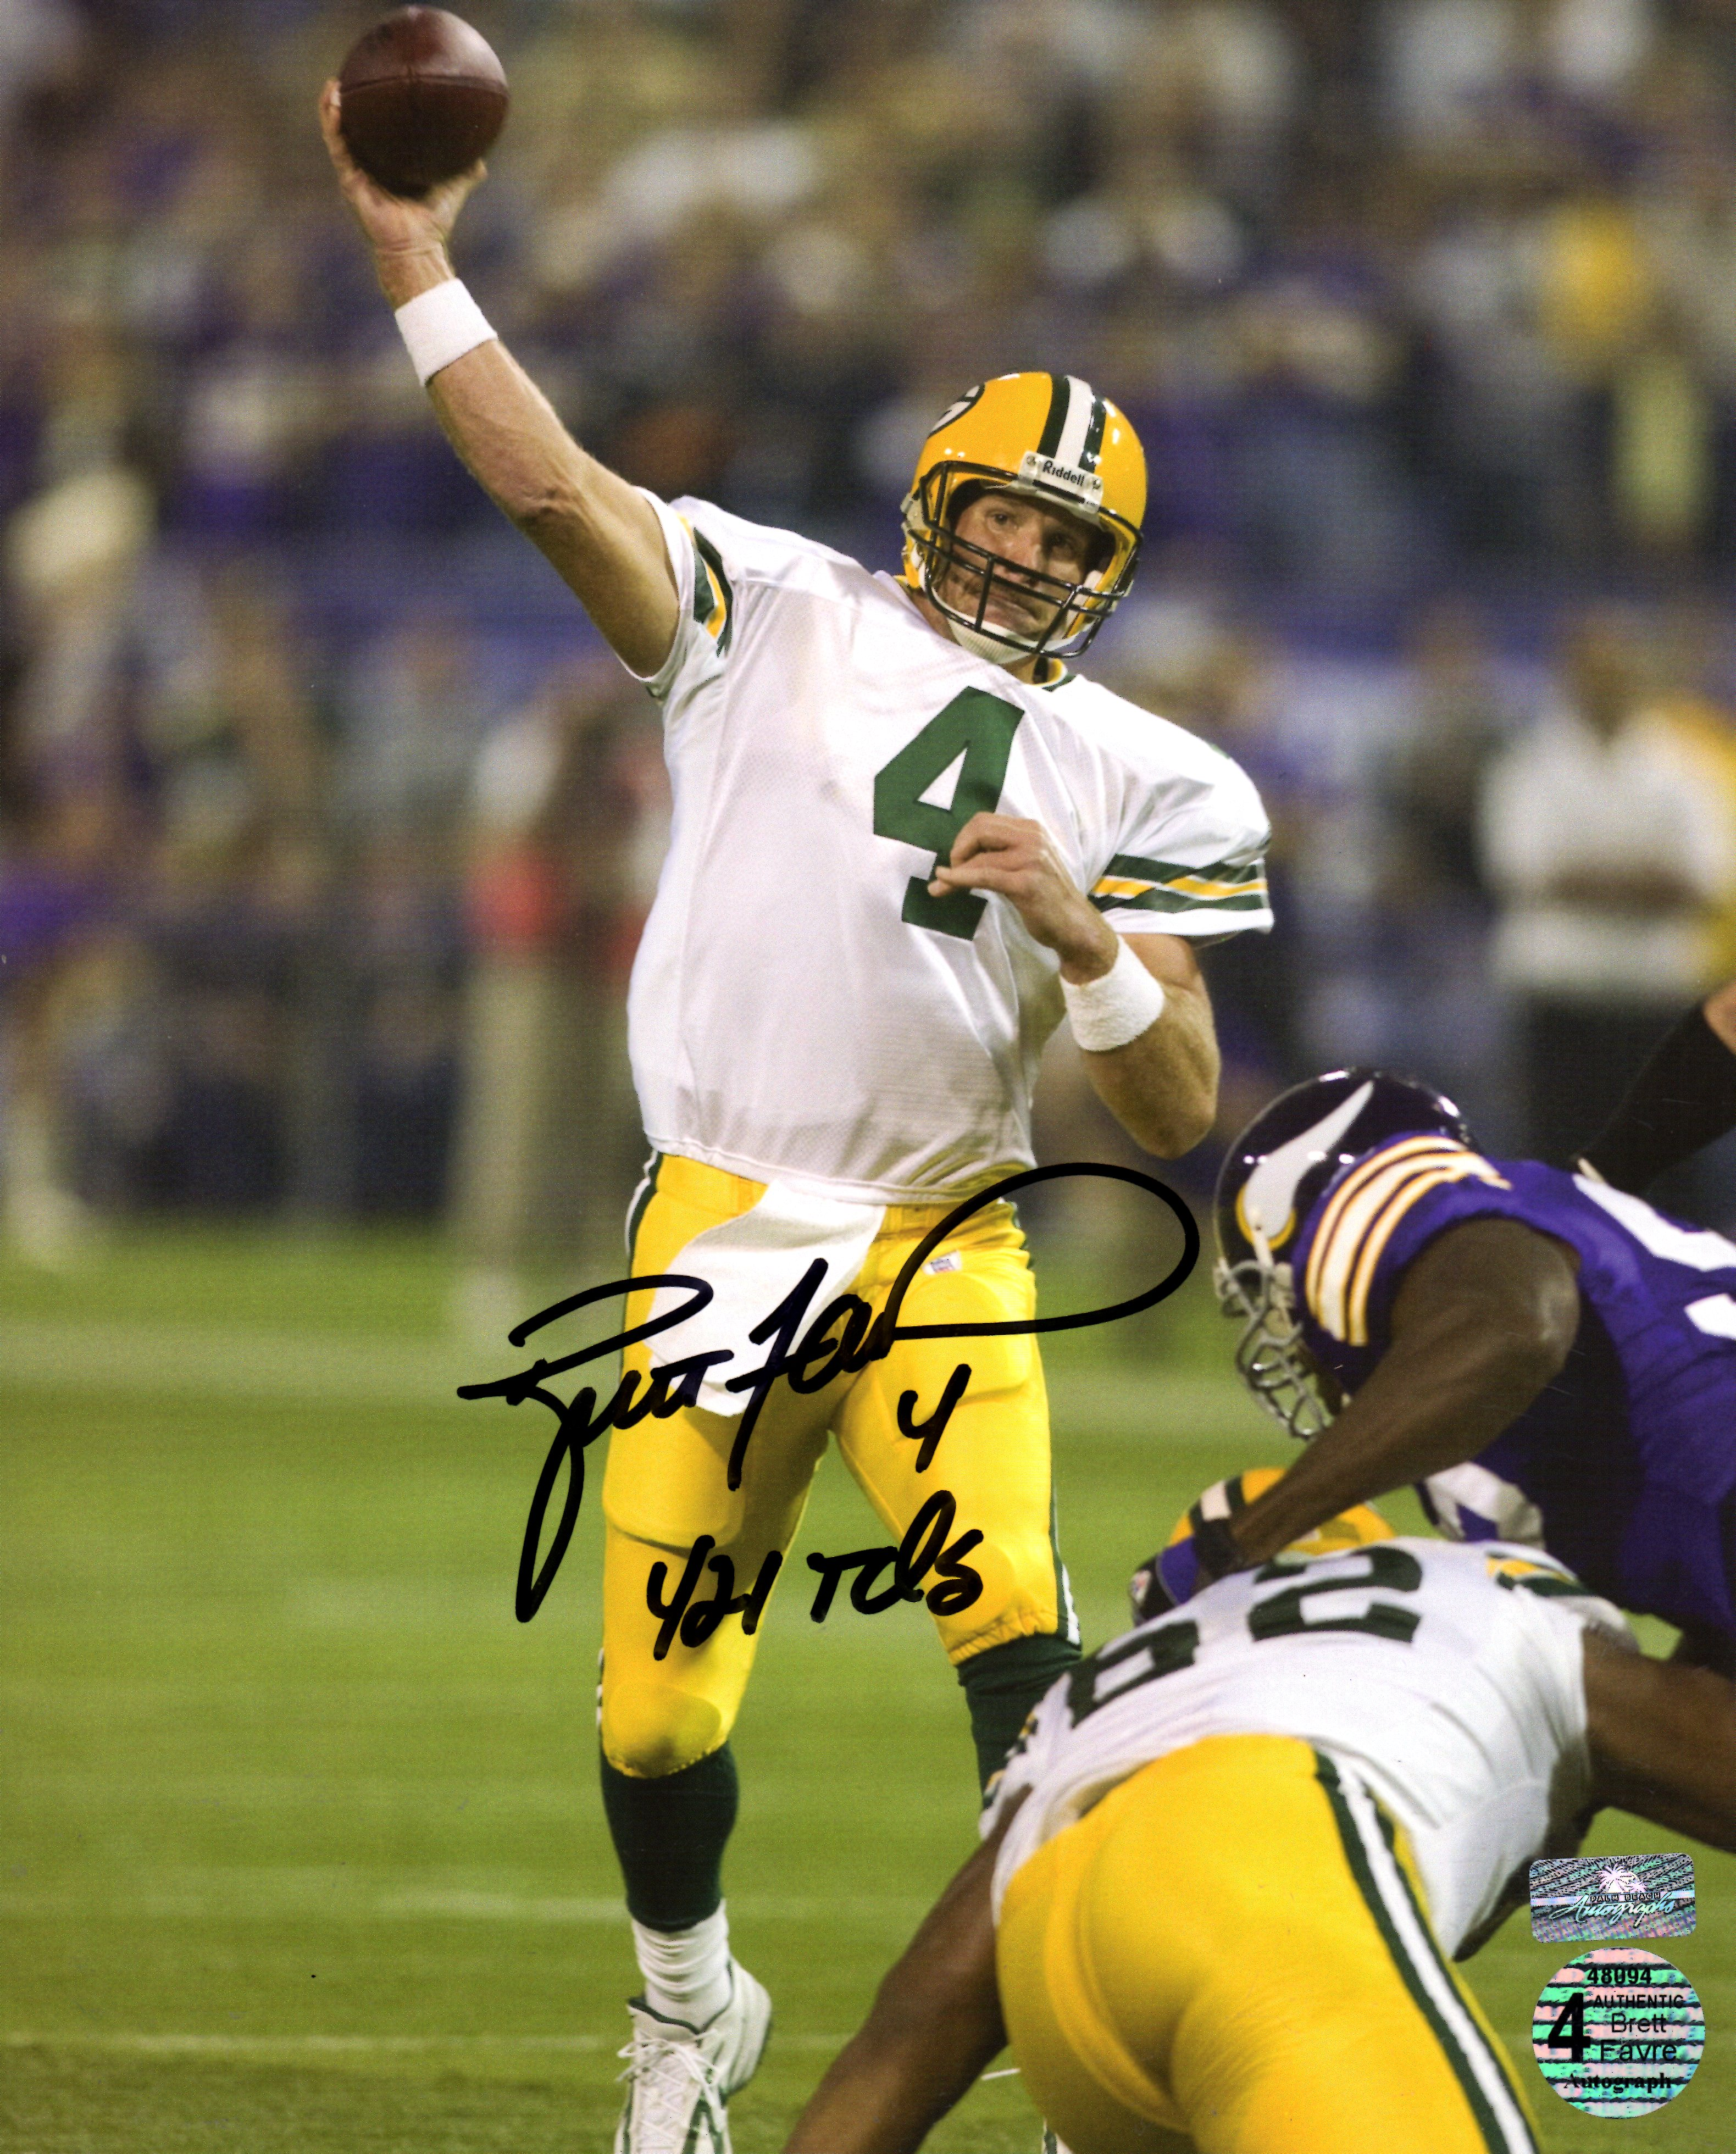 timeless design 38b09 ad1f5 Brett Favre Autographed Green Bay Packers (421 TD Pass) 8x10 Photo with